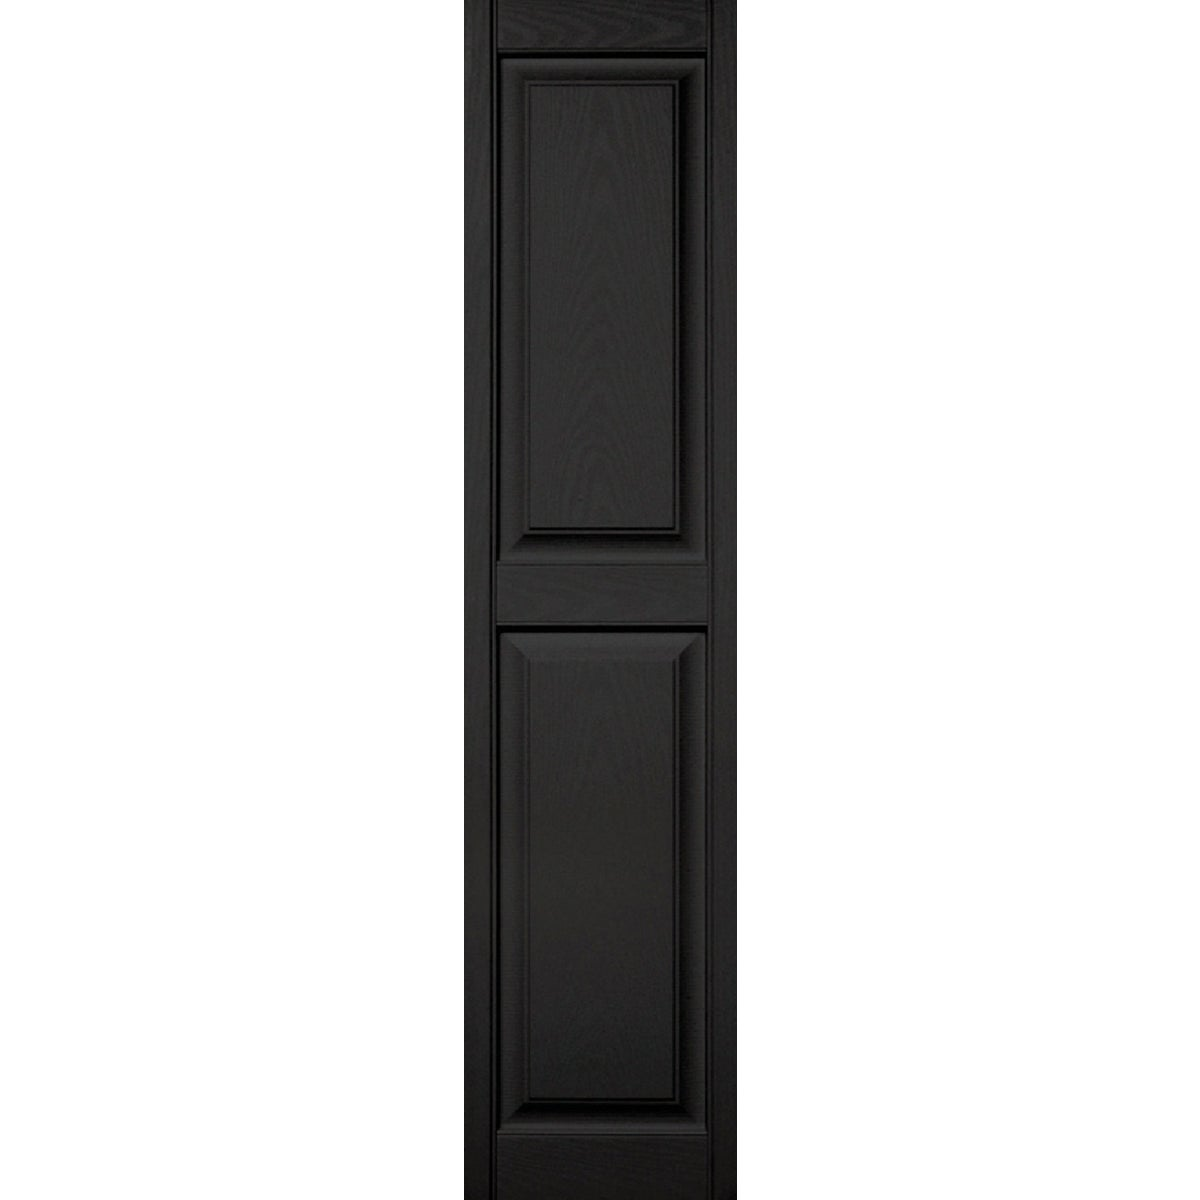 15X63 BLK PANEL SHUTTER - 040140063002 by The Tapco Group